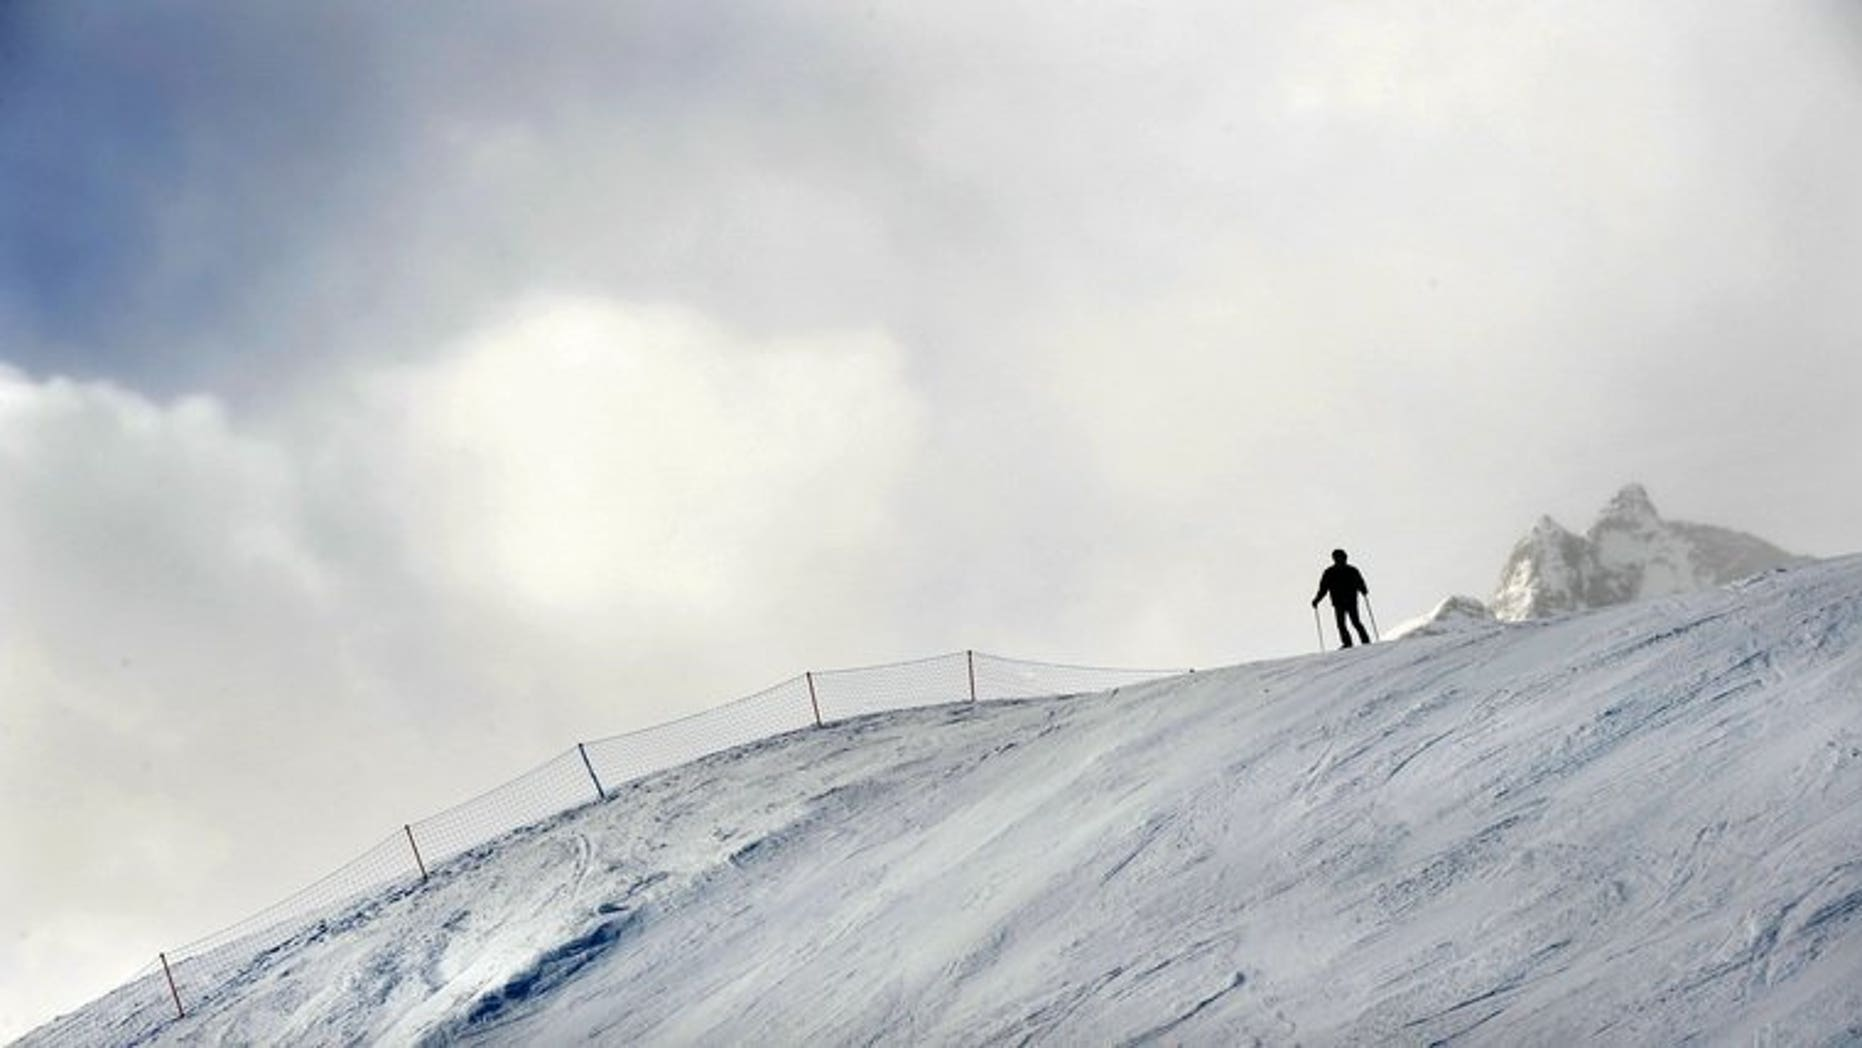 Max Gartner, Alpine Canada's chief executive, said Wednesday he will resign once a new leader is found, a change at the top coming only eight months before the 2014 Sochi Winter Olympics.